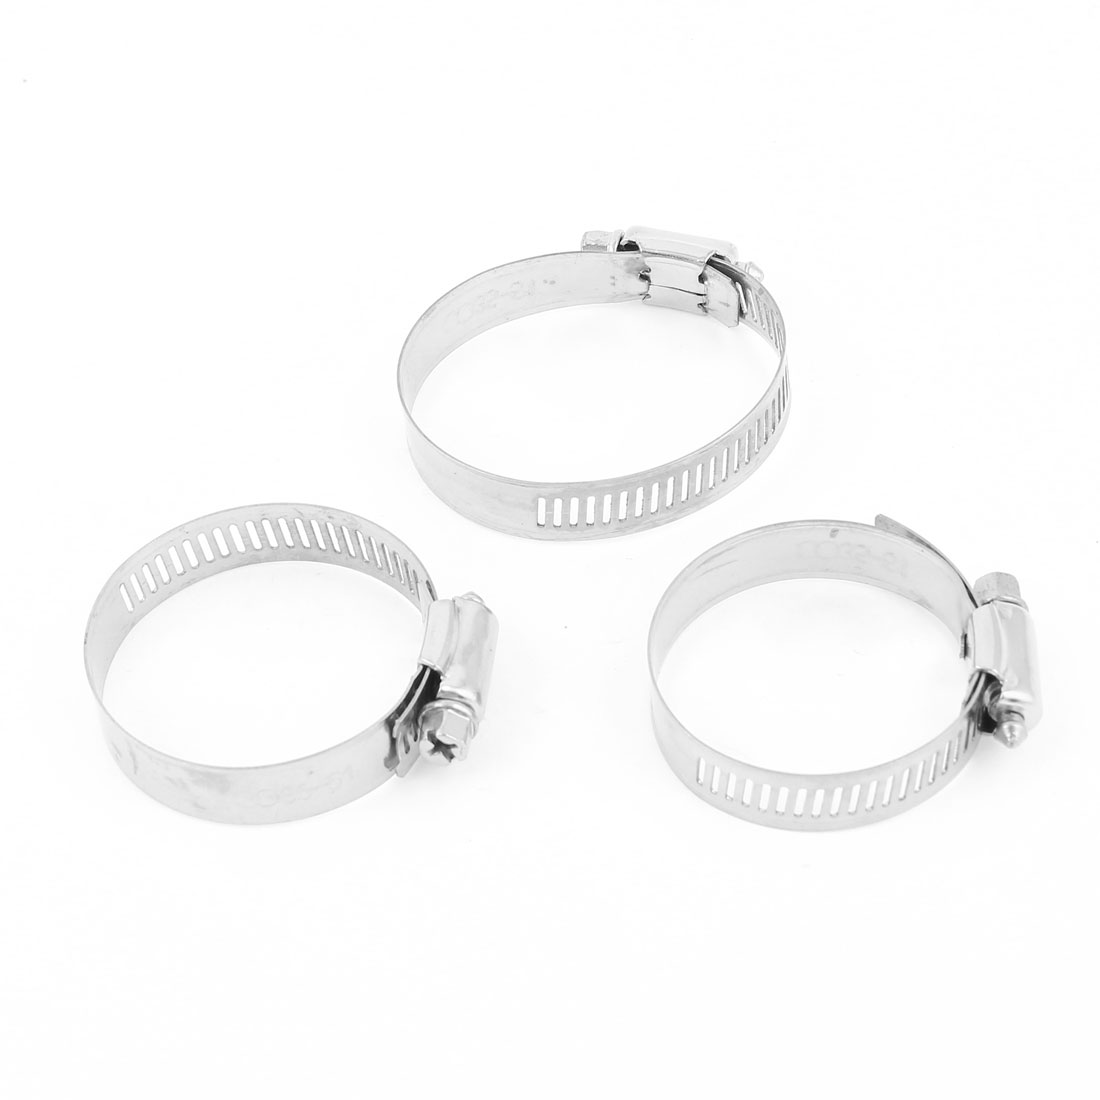 3pcs Stainless Steel Drive Hose Clamp Clip Replacement 35mm-51mm